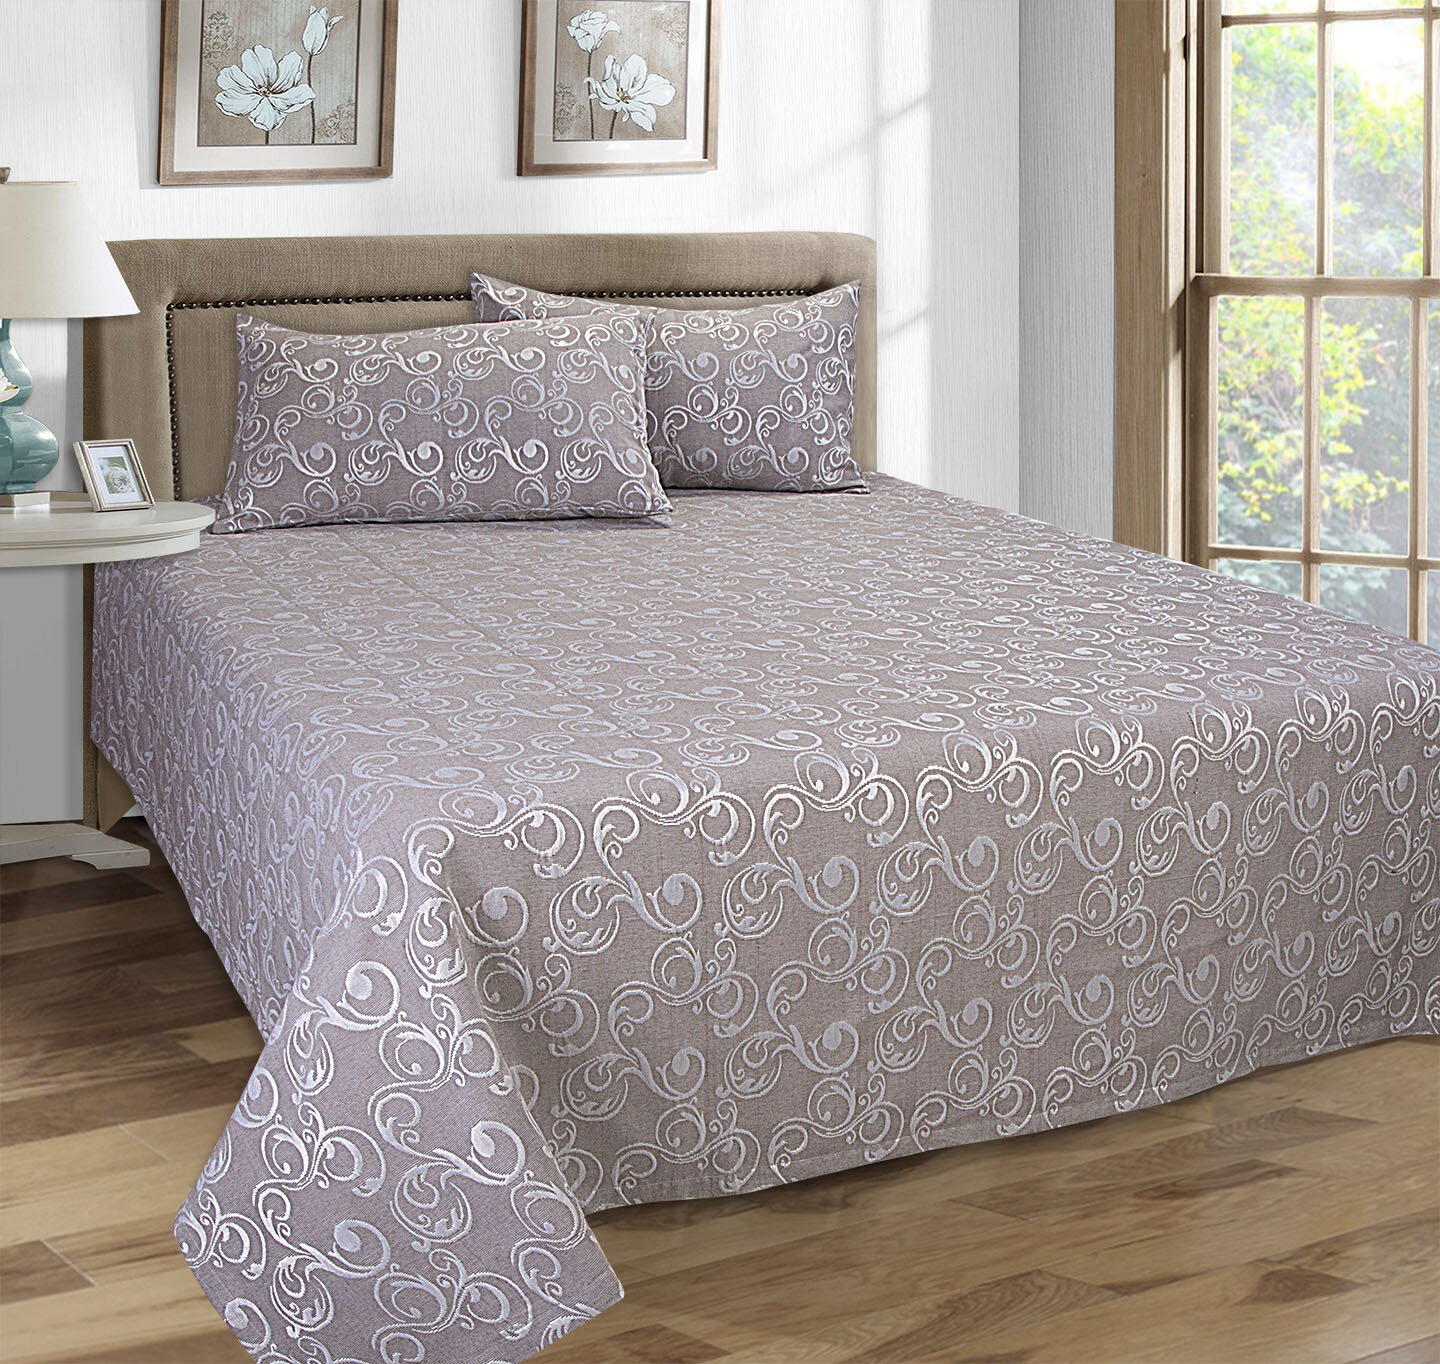 bedrooms in with bedspread is king costco quality matelasse contemporary design bedroom furniture bed what of queen bedding coverlet high